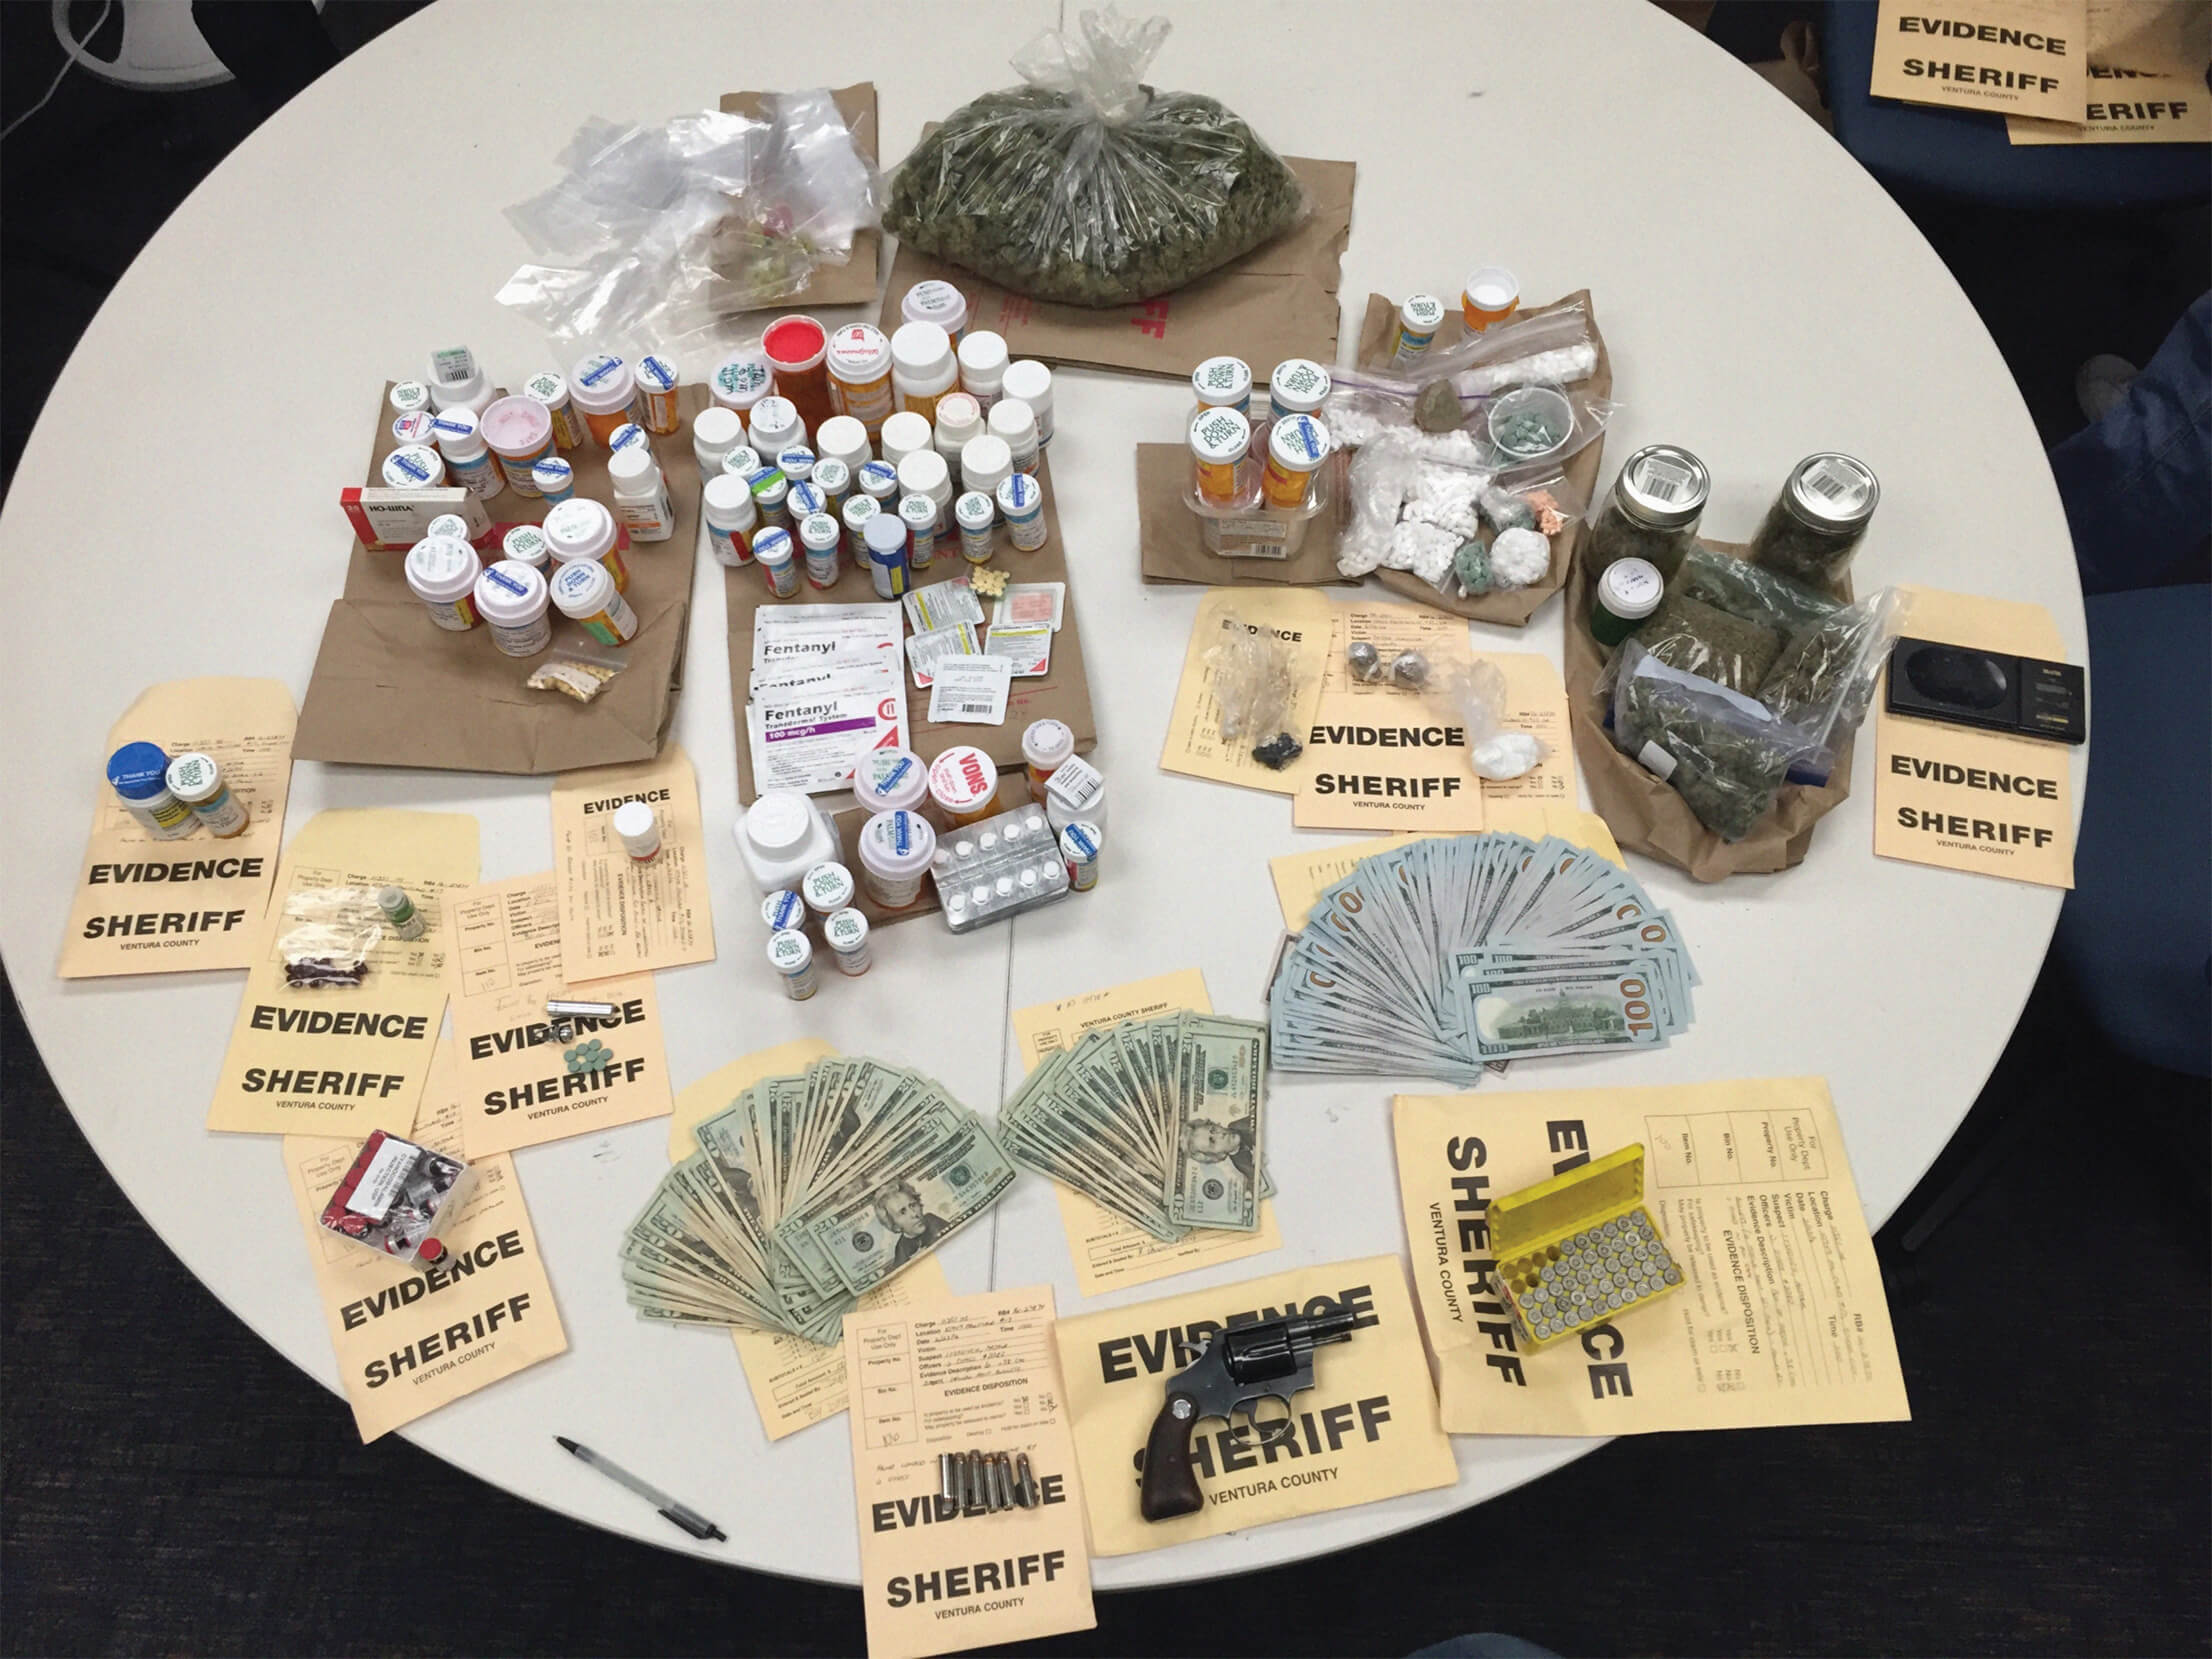 Paraphernalia collected as evidence on table.